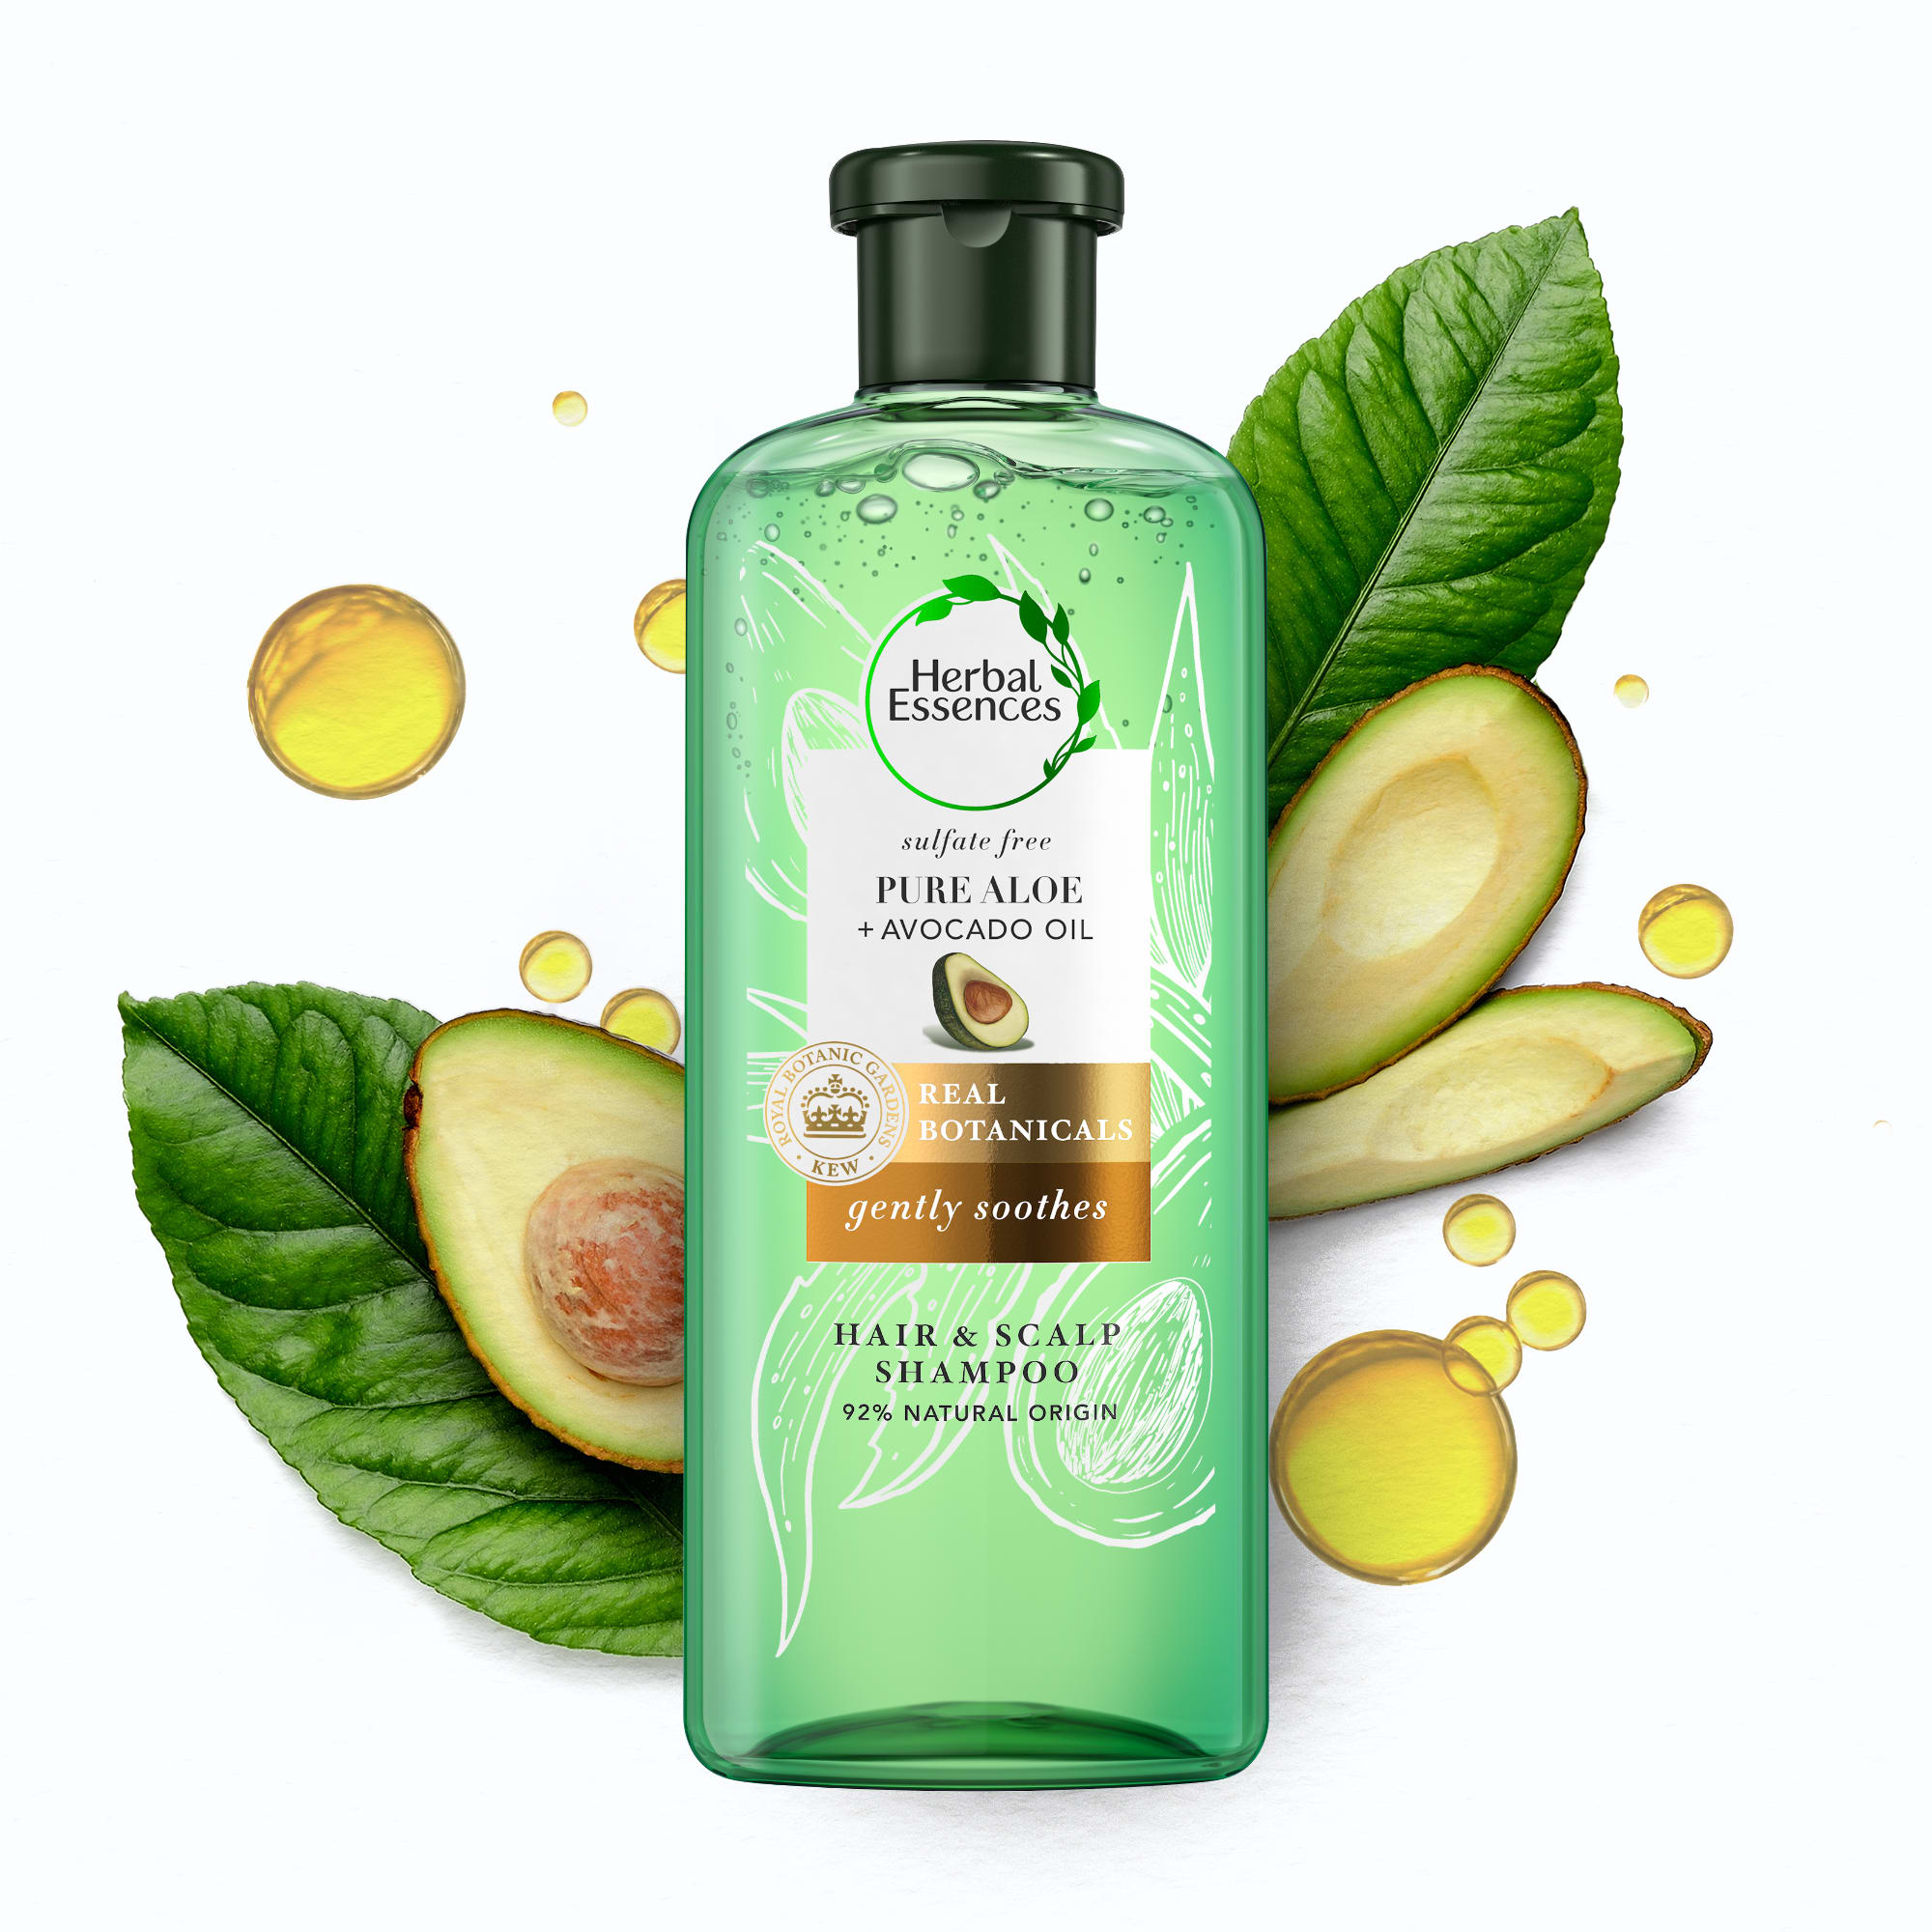 Sulphate-free Pure Aloe + Avocado Oil Shampoo